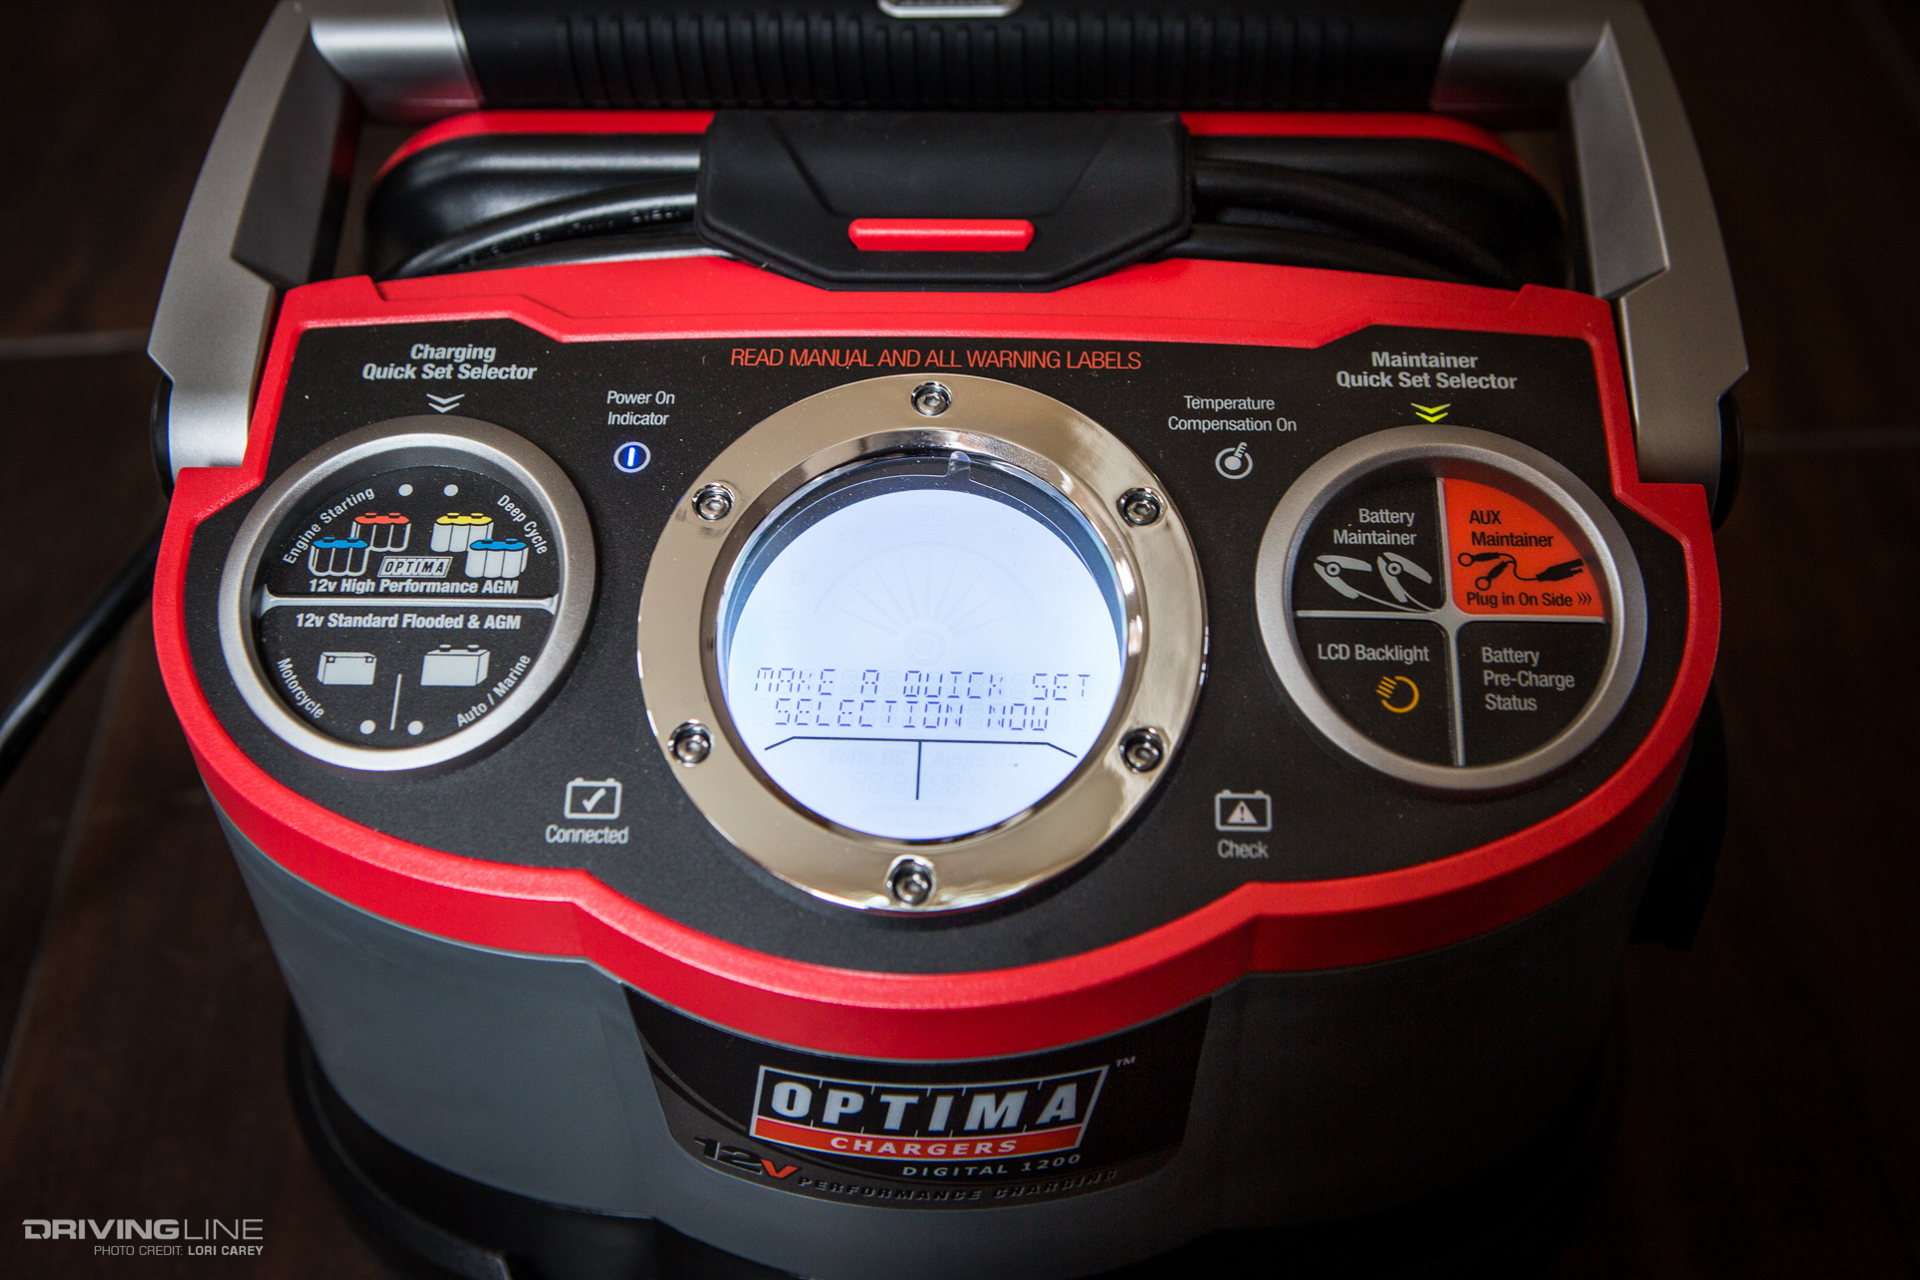 Car Battery Charger Reviews >> OPTIMA Digital Battery Charger and Maintainers Review | DrivingLine